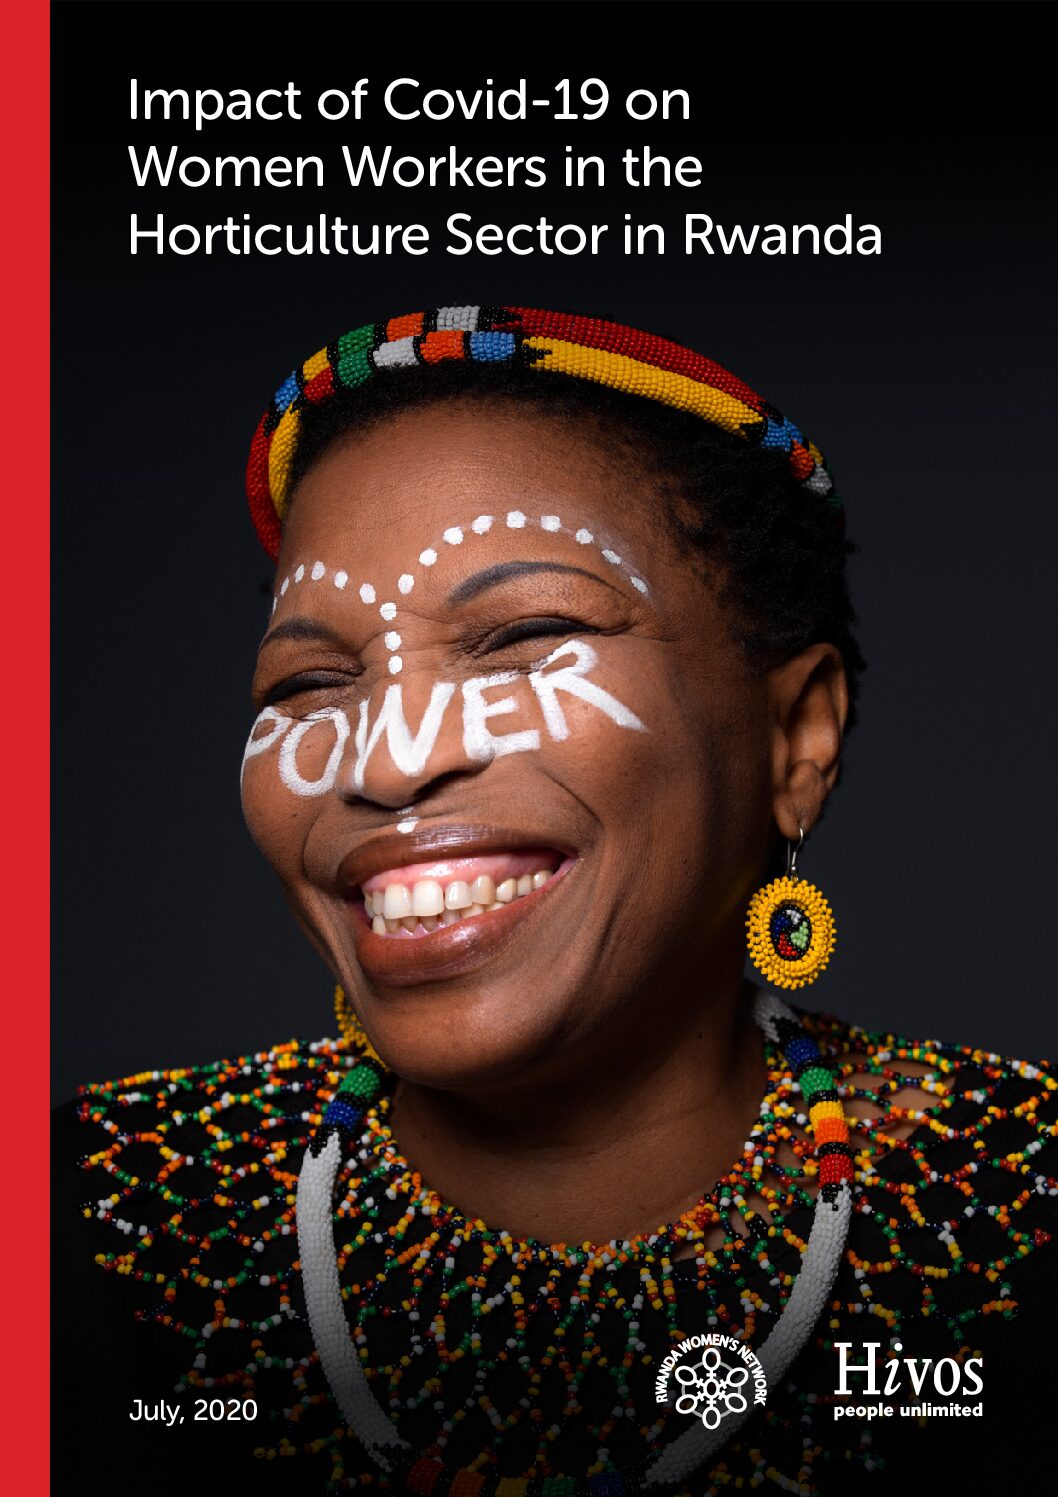 Impact of Covid-19 on Women Workers in the Horticulture Sector in Rwanda